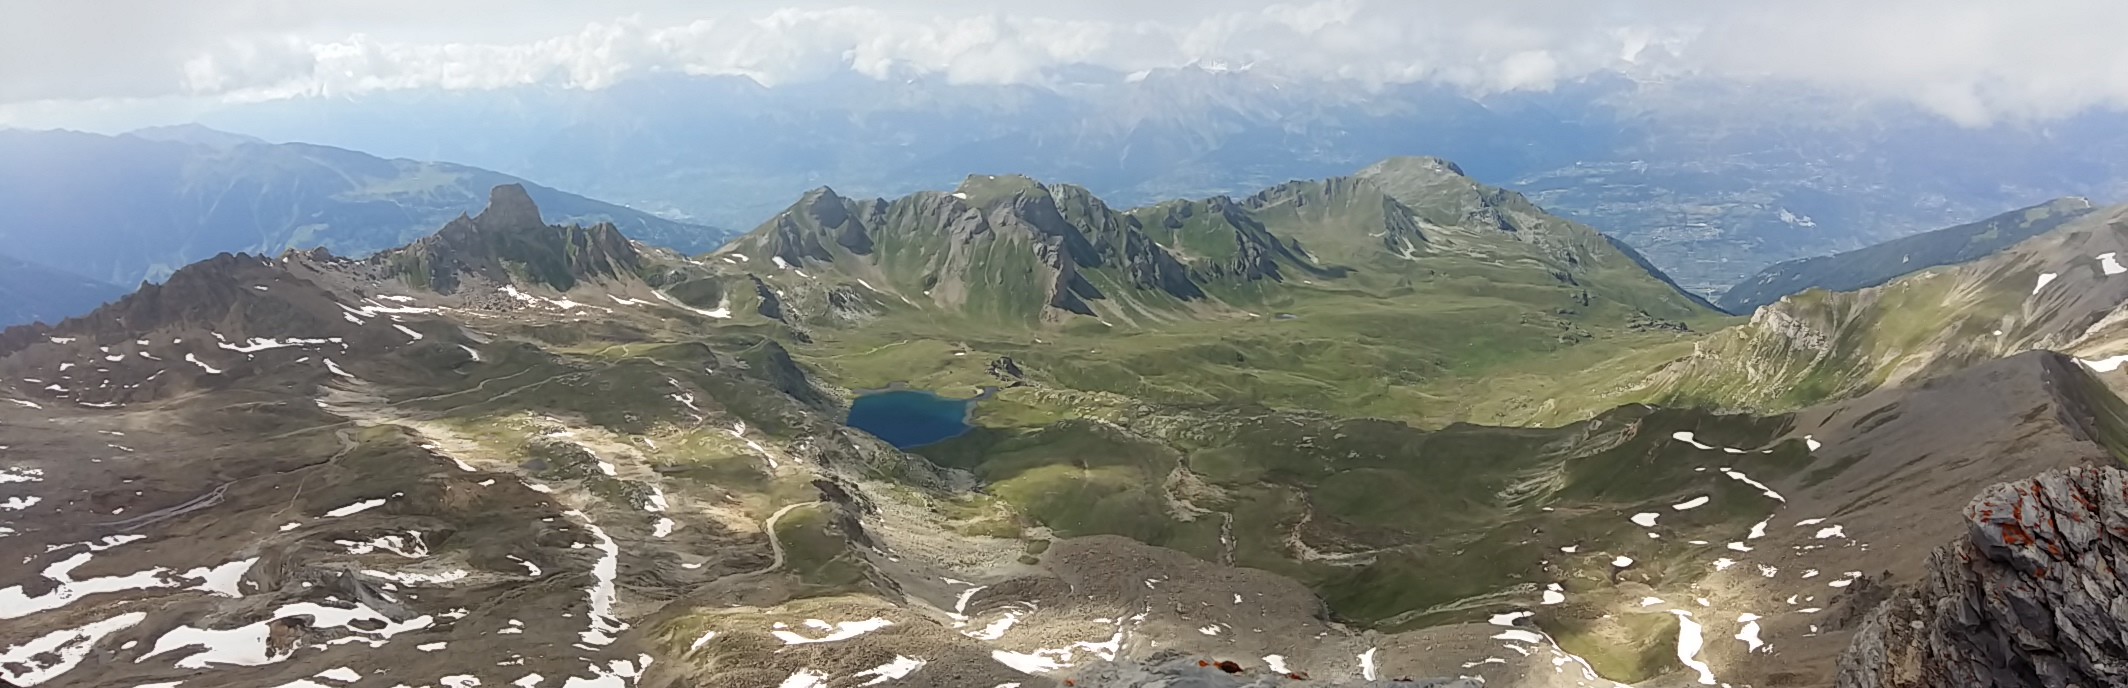 Becs de Bosson – 3149m - Gallery Slide #29